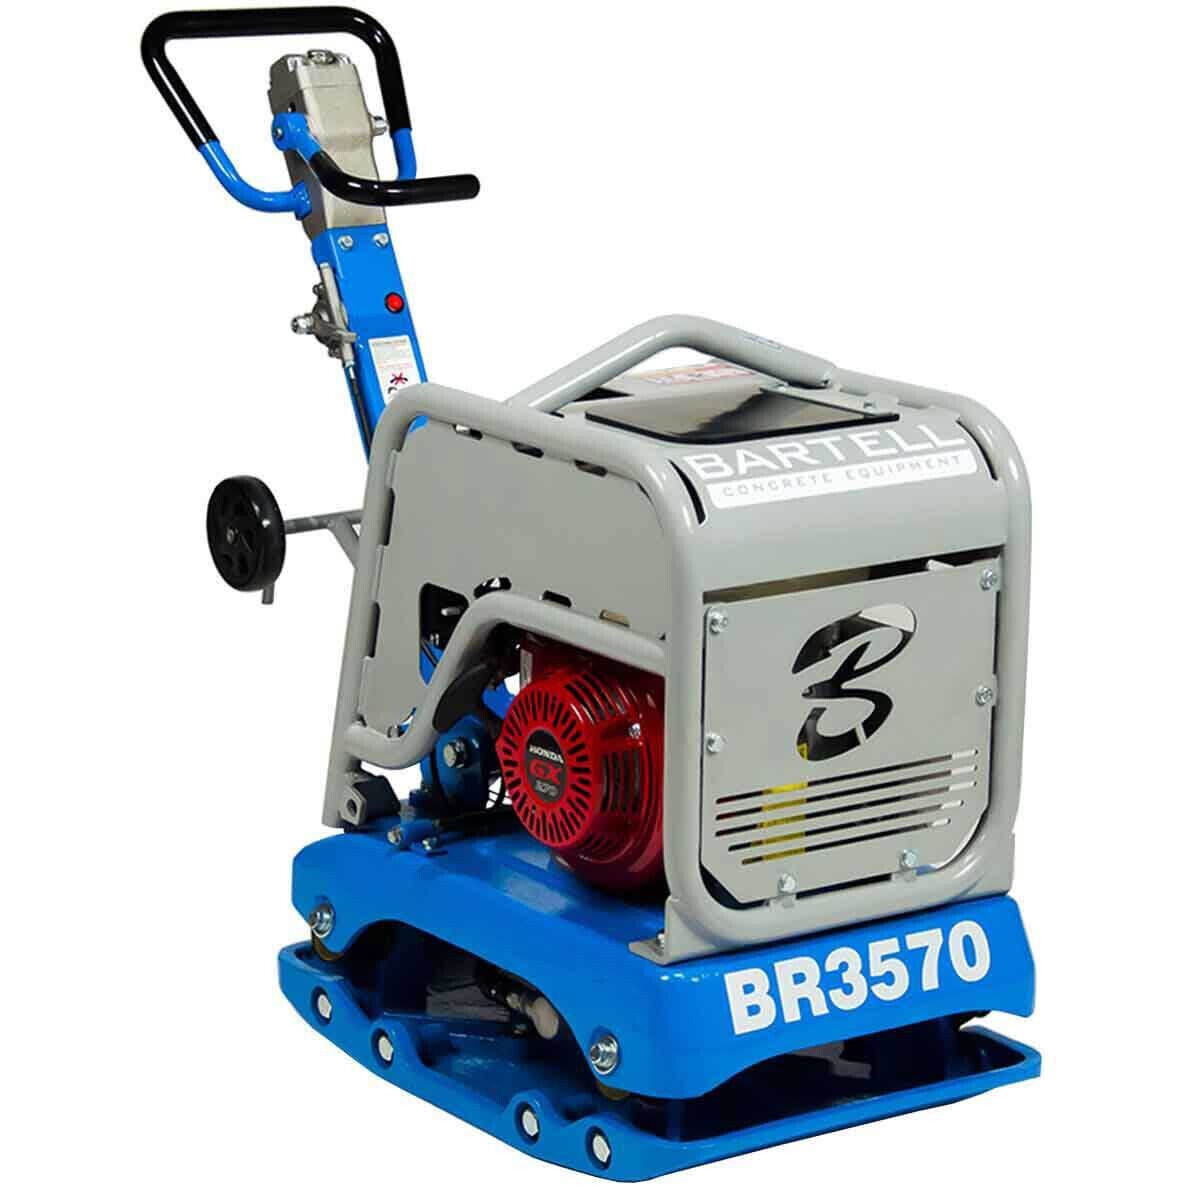 Bartell BR3570 Reversible Plate Compactor